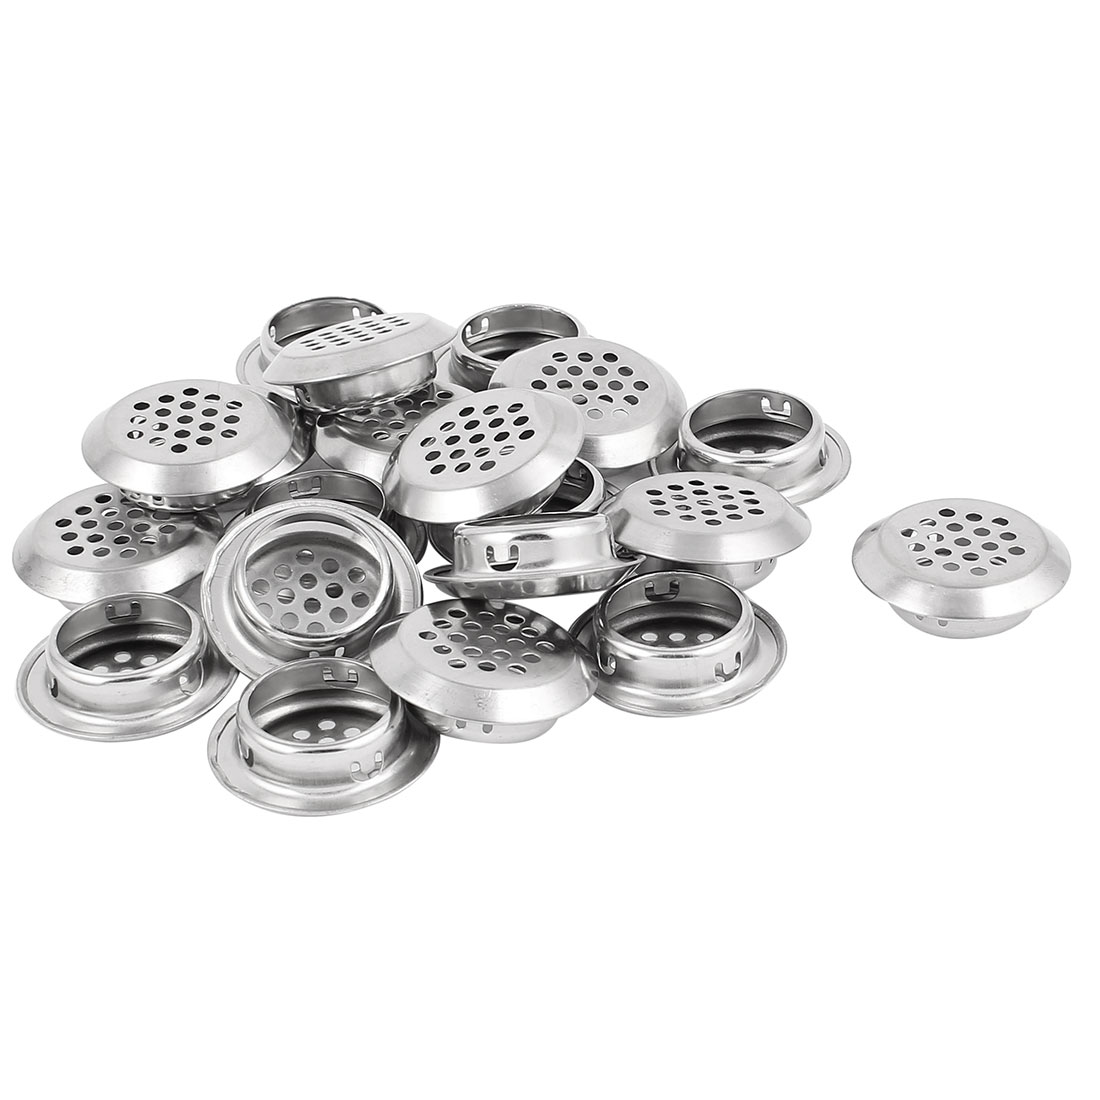 29mm Bottom Dia Round Panel Shoes Cupboard Cabinet Air Vent Louver Cover 20pcs